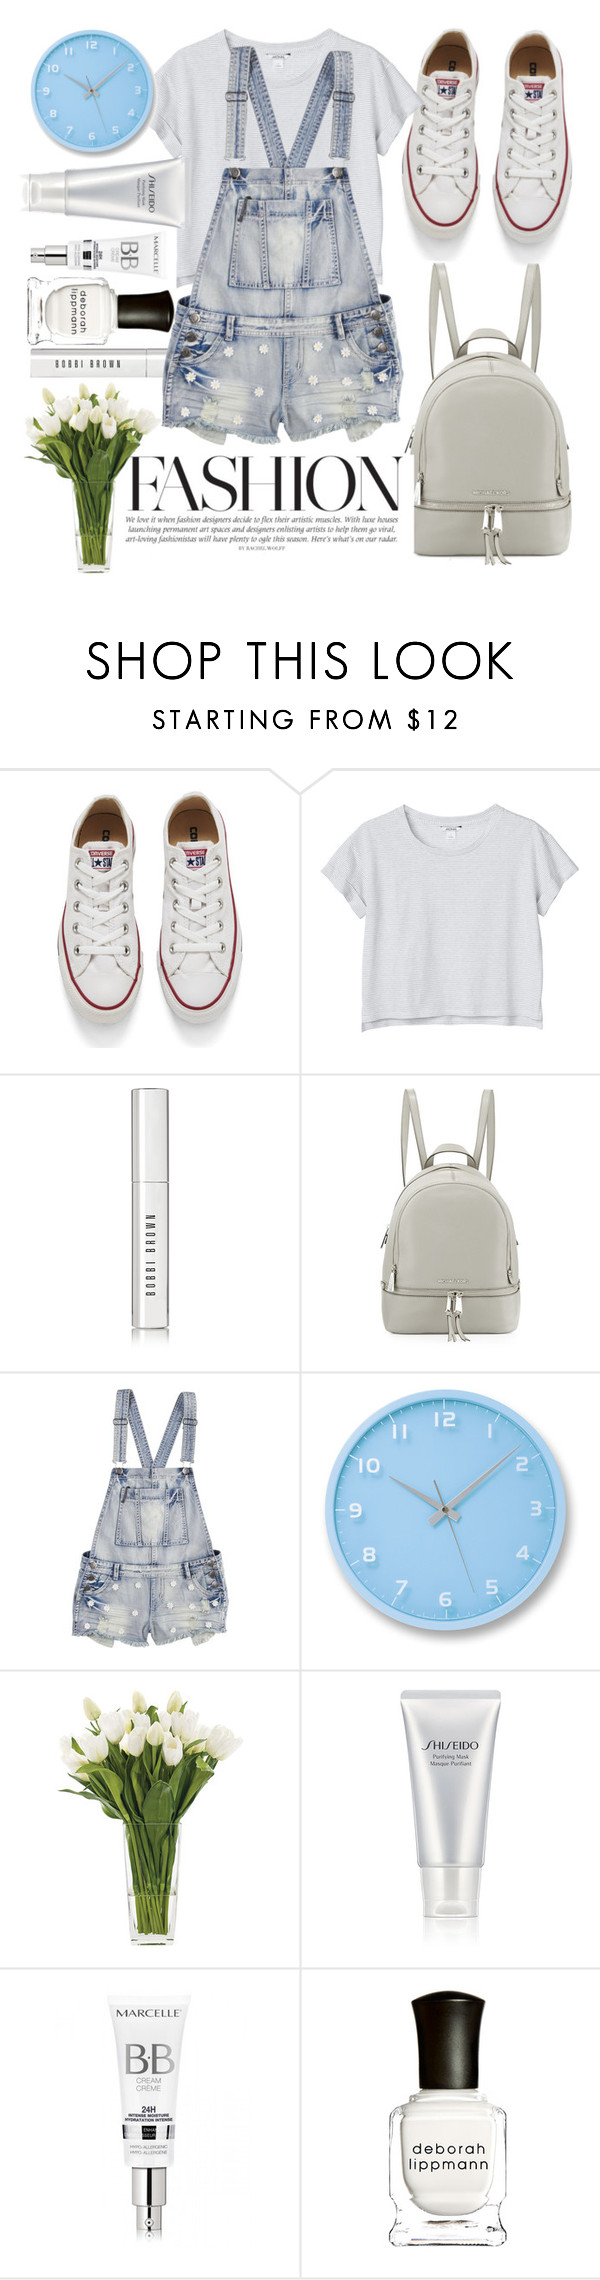 """Untitled #141"" by maiaa-2001 ❤ liked on Polyvore featuring Converse, Monki, Bobbi Brown Cosmetics, MICHAEL Michael Kors, Lemnos, NDI, Shiseido, Deborah Lippmann, women's clothing and women"